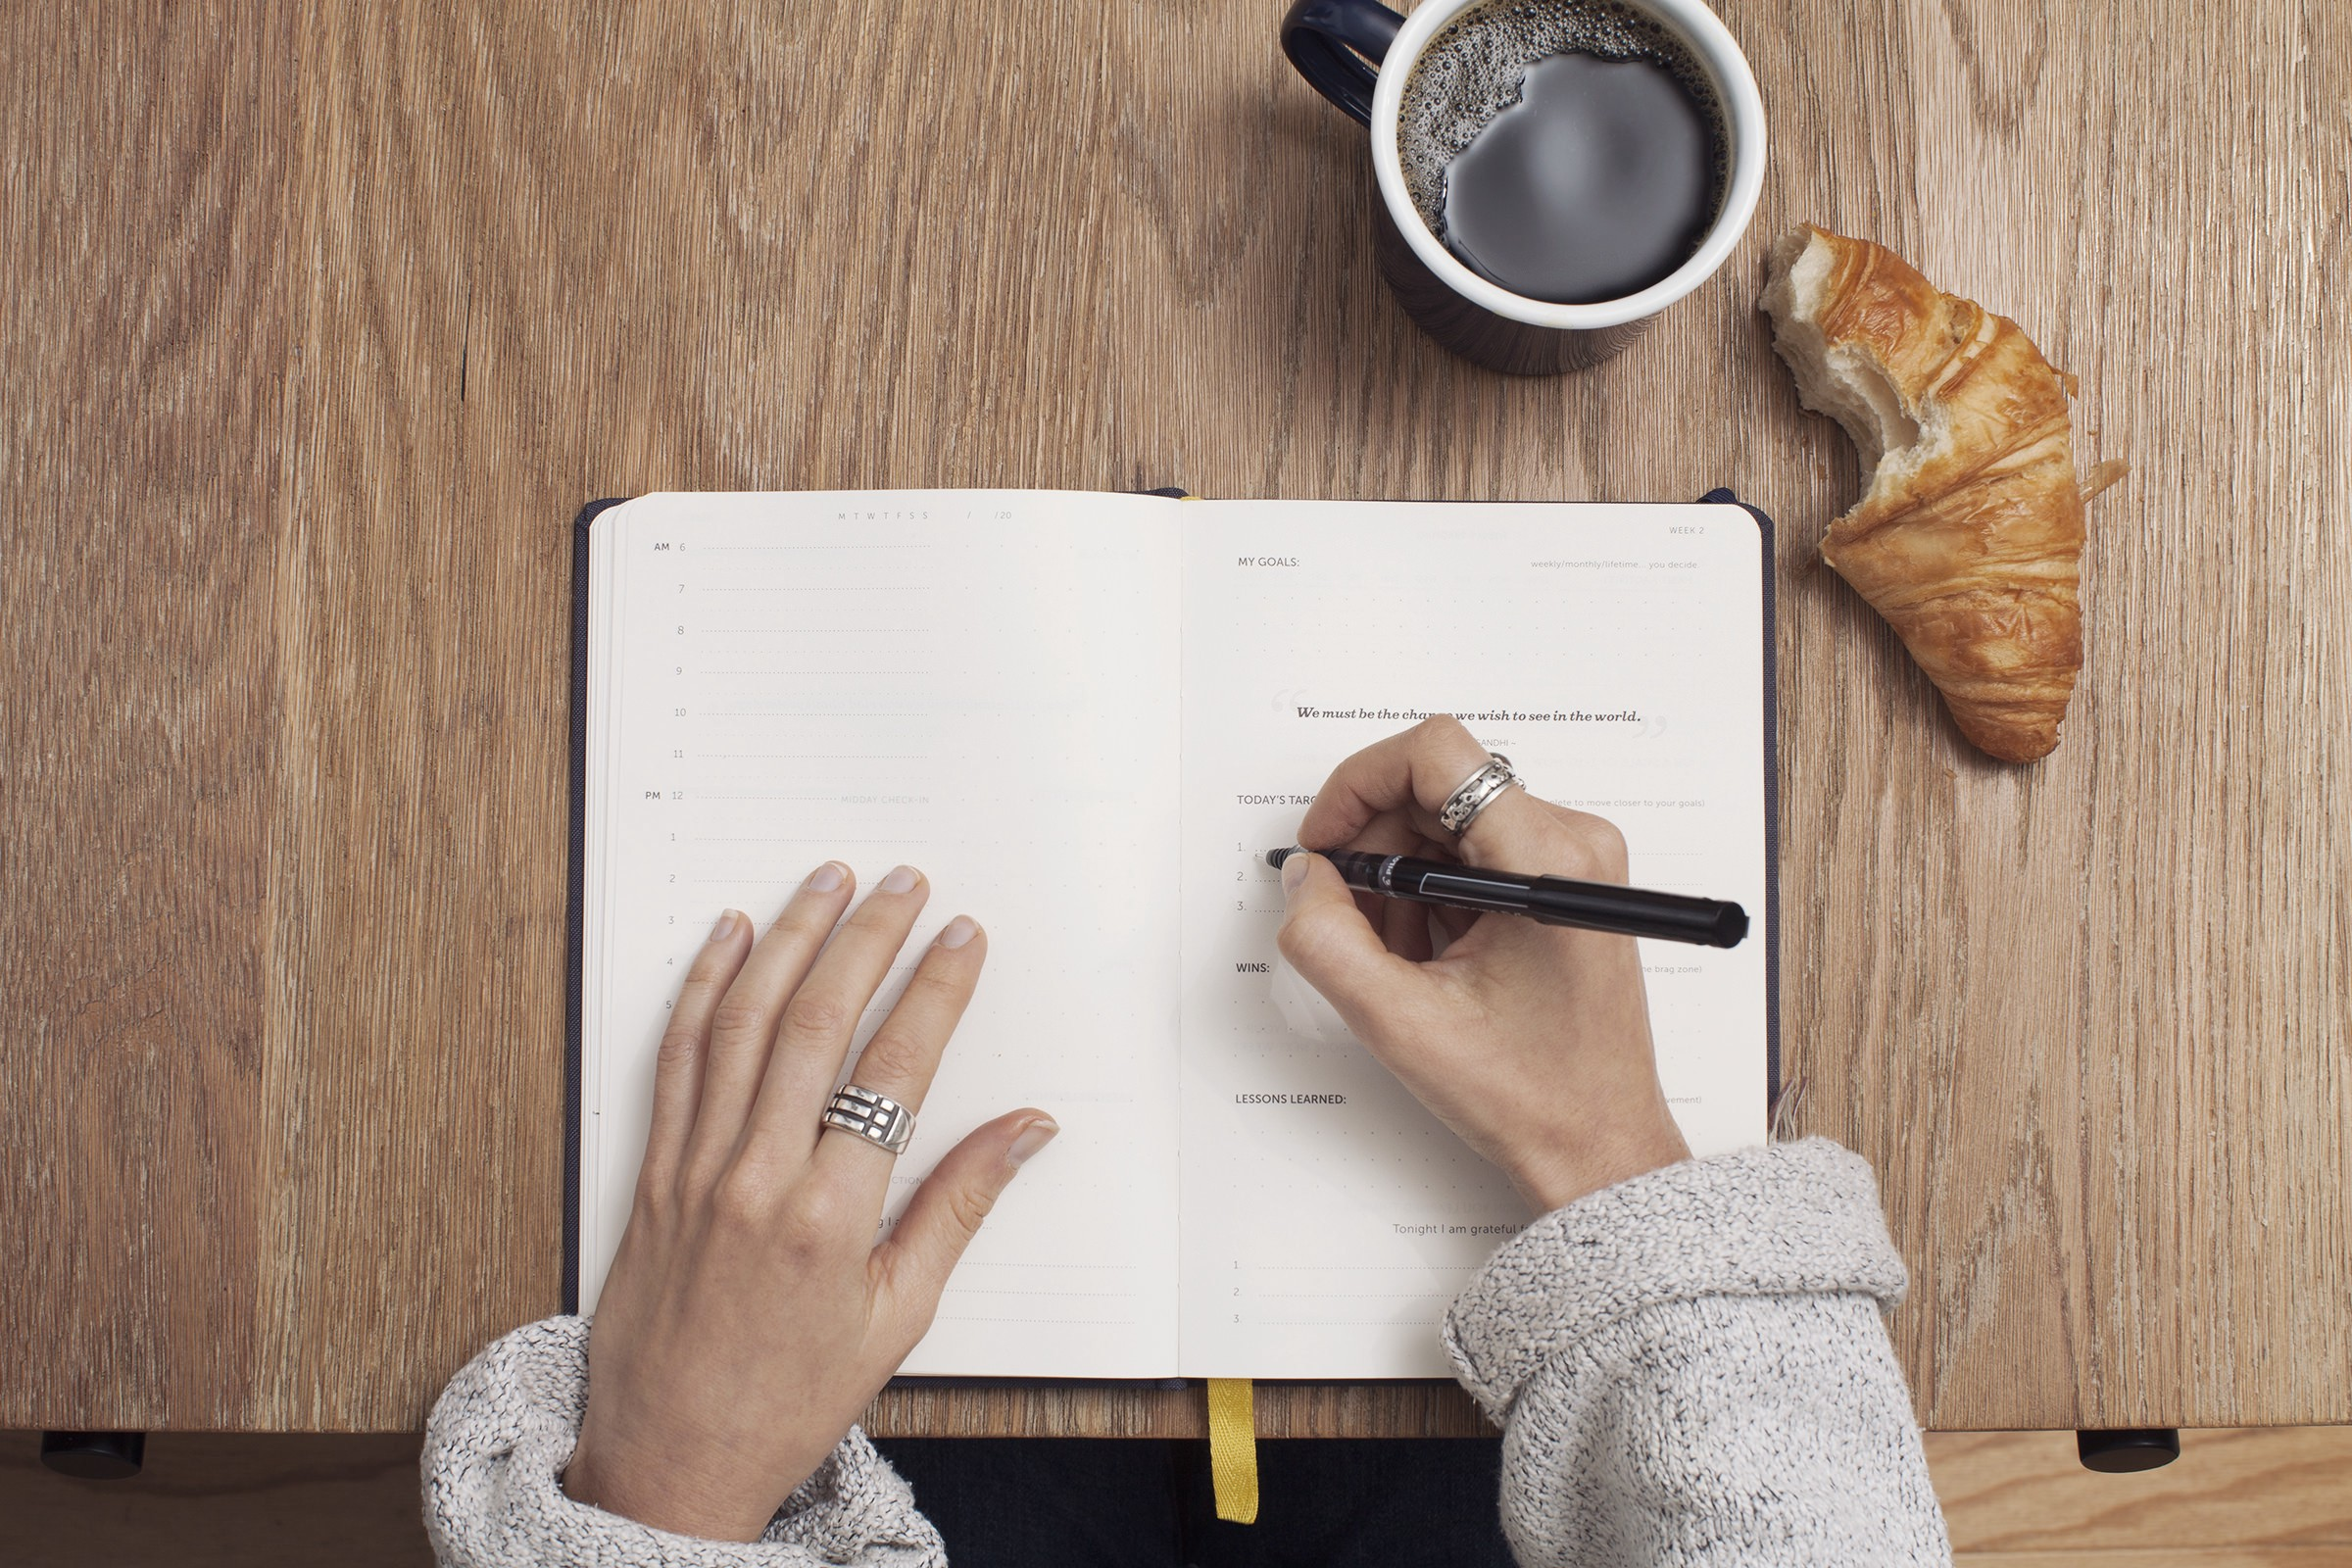 """""""A person writing in a life planner with a coffee and a croissant on the desk"""" by Cathryn Lavery on Unsplash"""